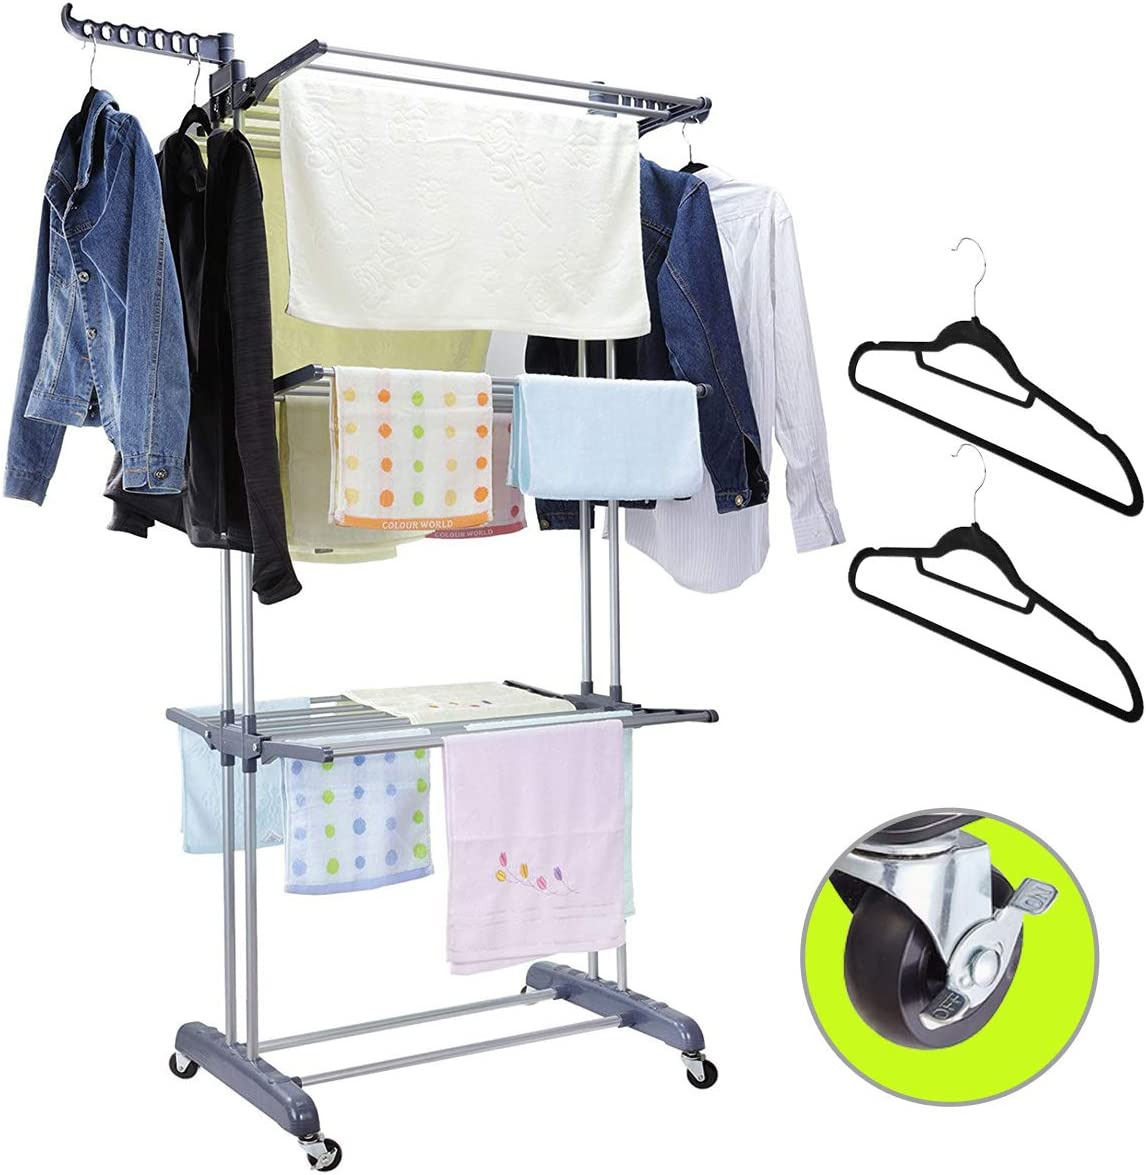 MIZG Clothes Drying Rack,3 Tier Rolling Dryer Clothes Hanger,Collapsible Garment Laundry Rack with Foldable Wings and Casters Indoor/Outdoor,Large Standing Rack Stainless Steel Hanging Rods(Gray)